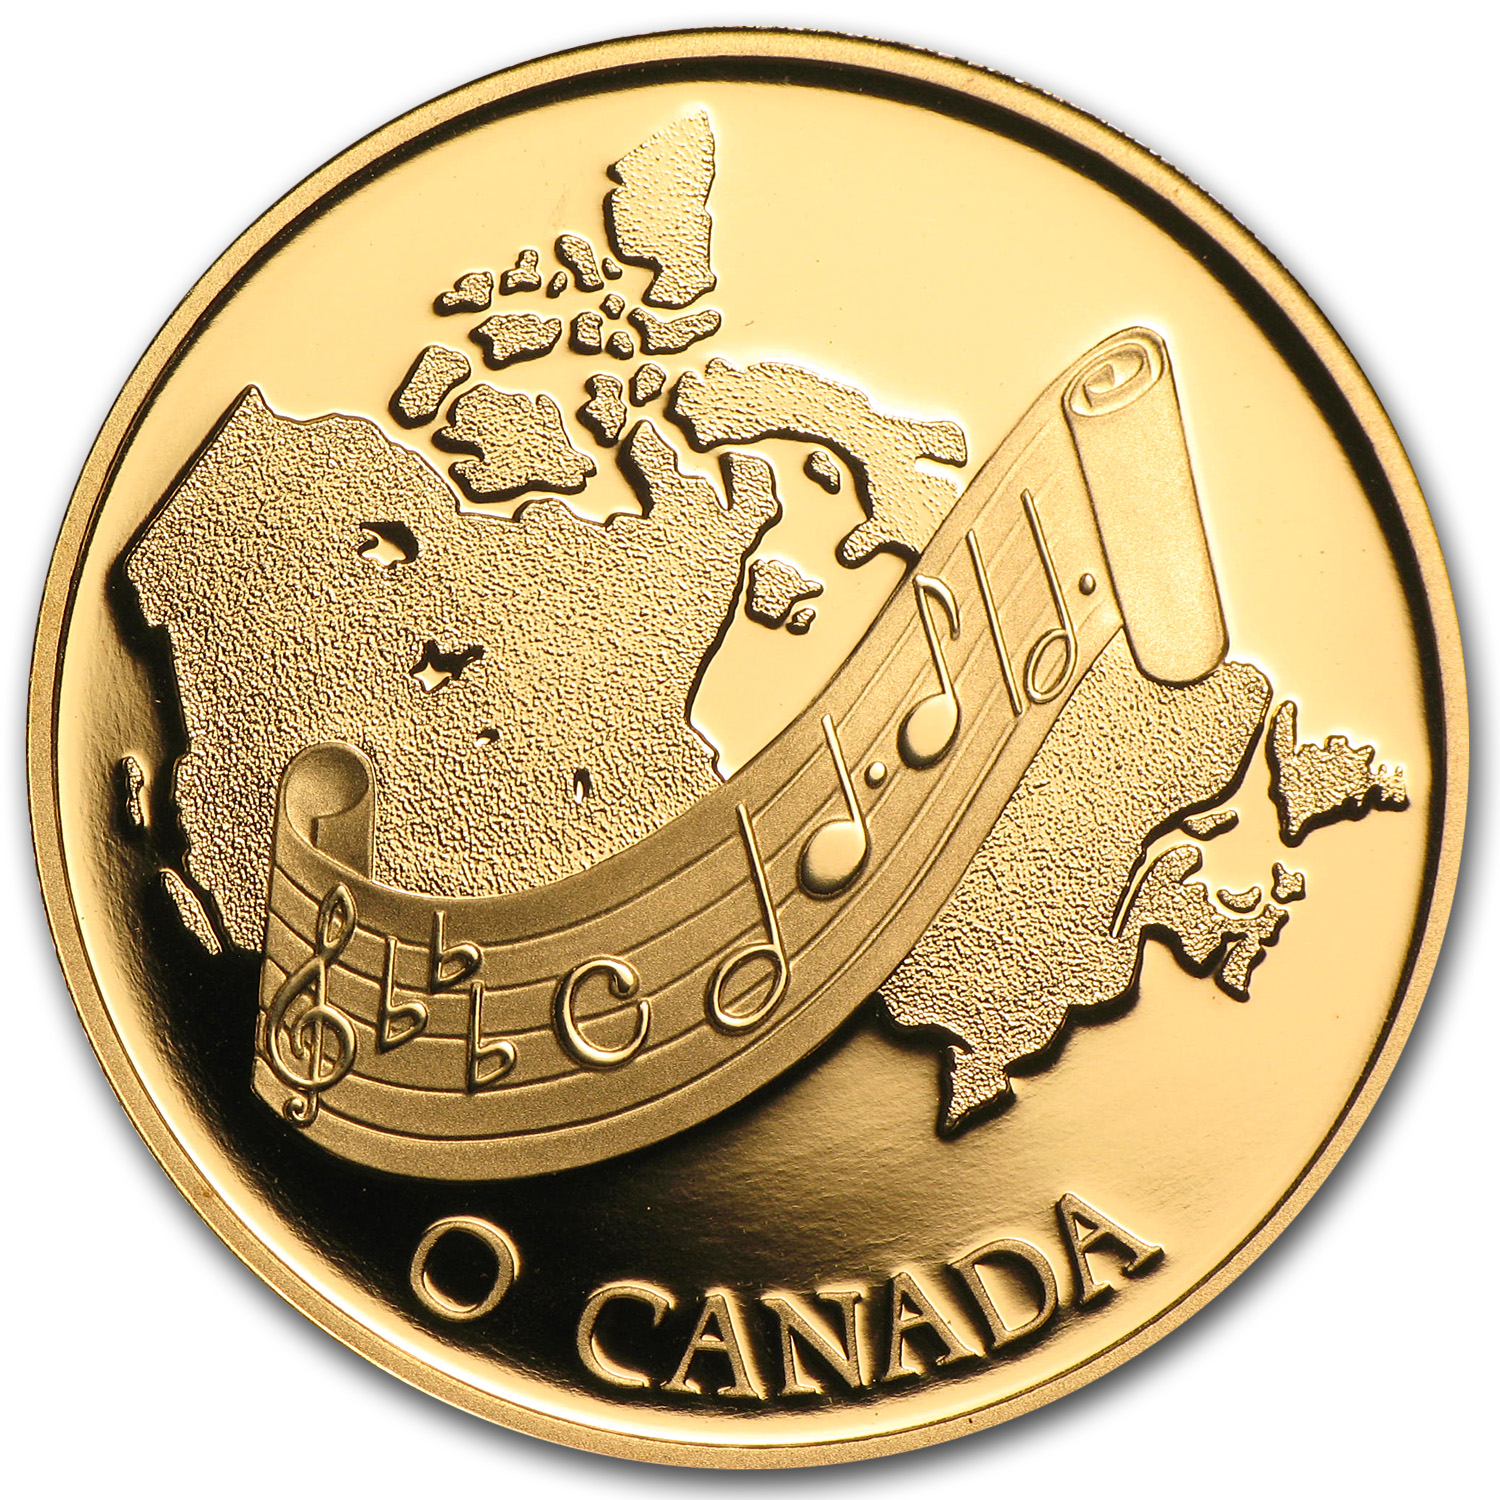 1981 Canada 1/2 oz Proof Gold $100 National Anthem: O Canada!